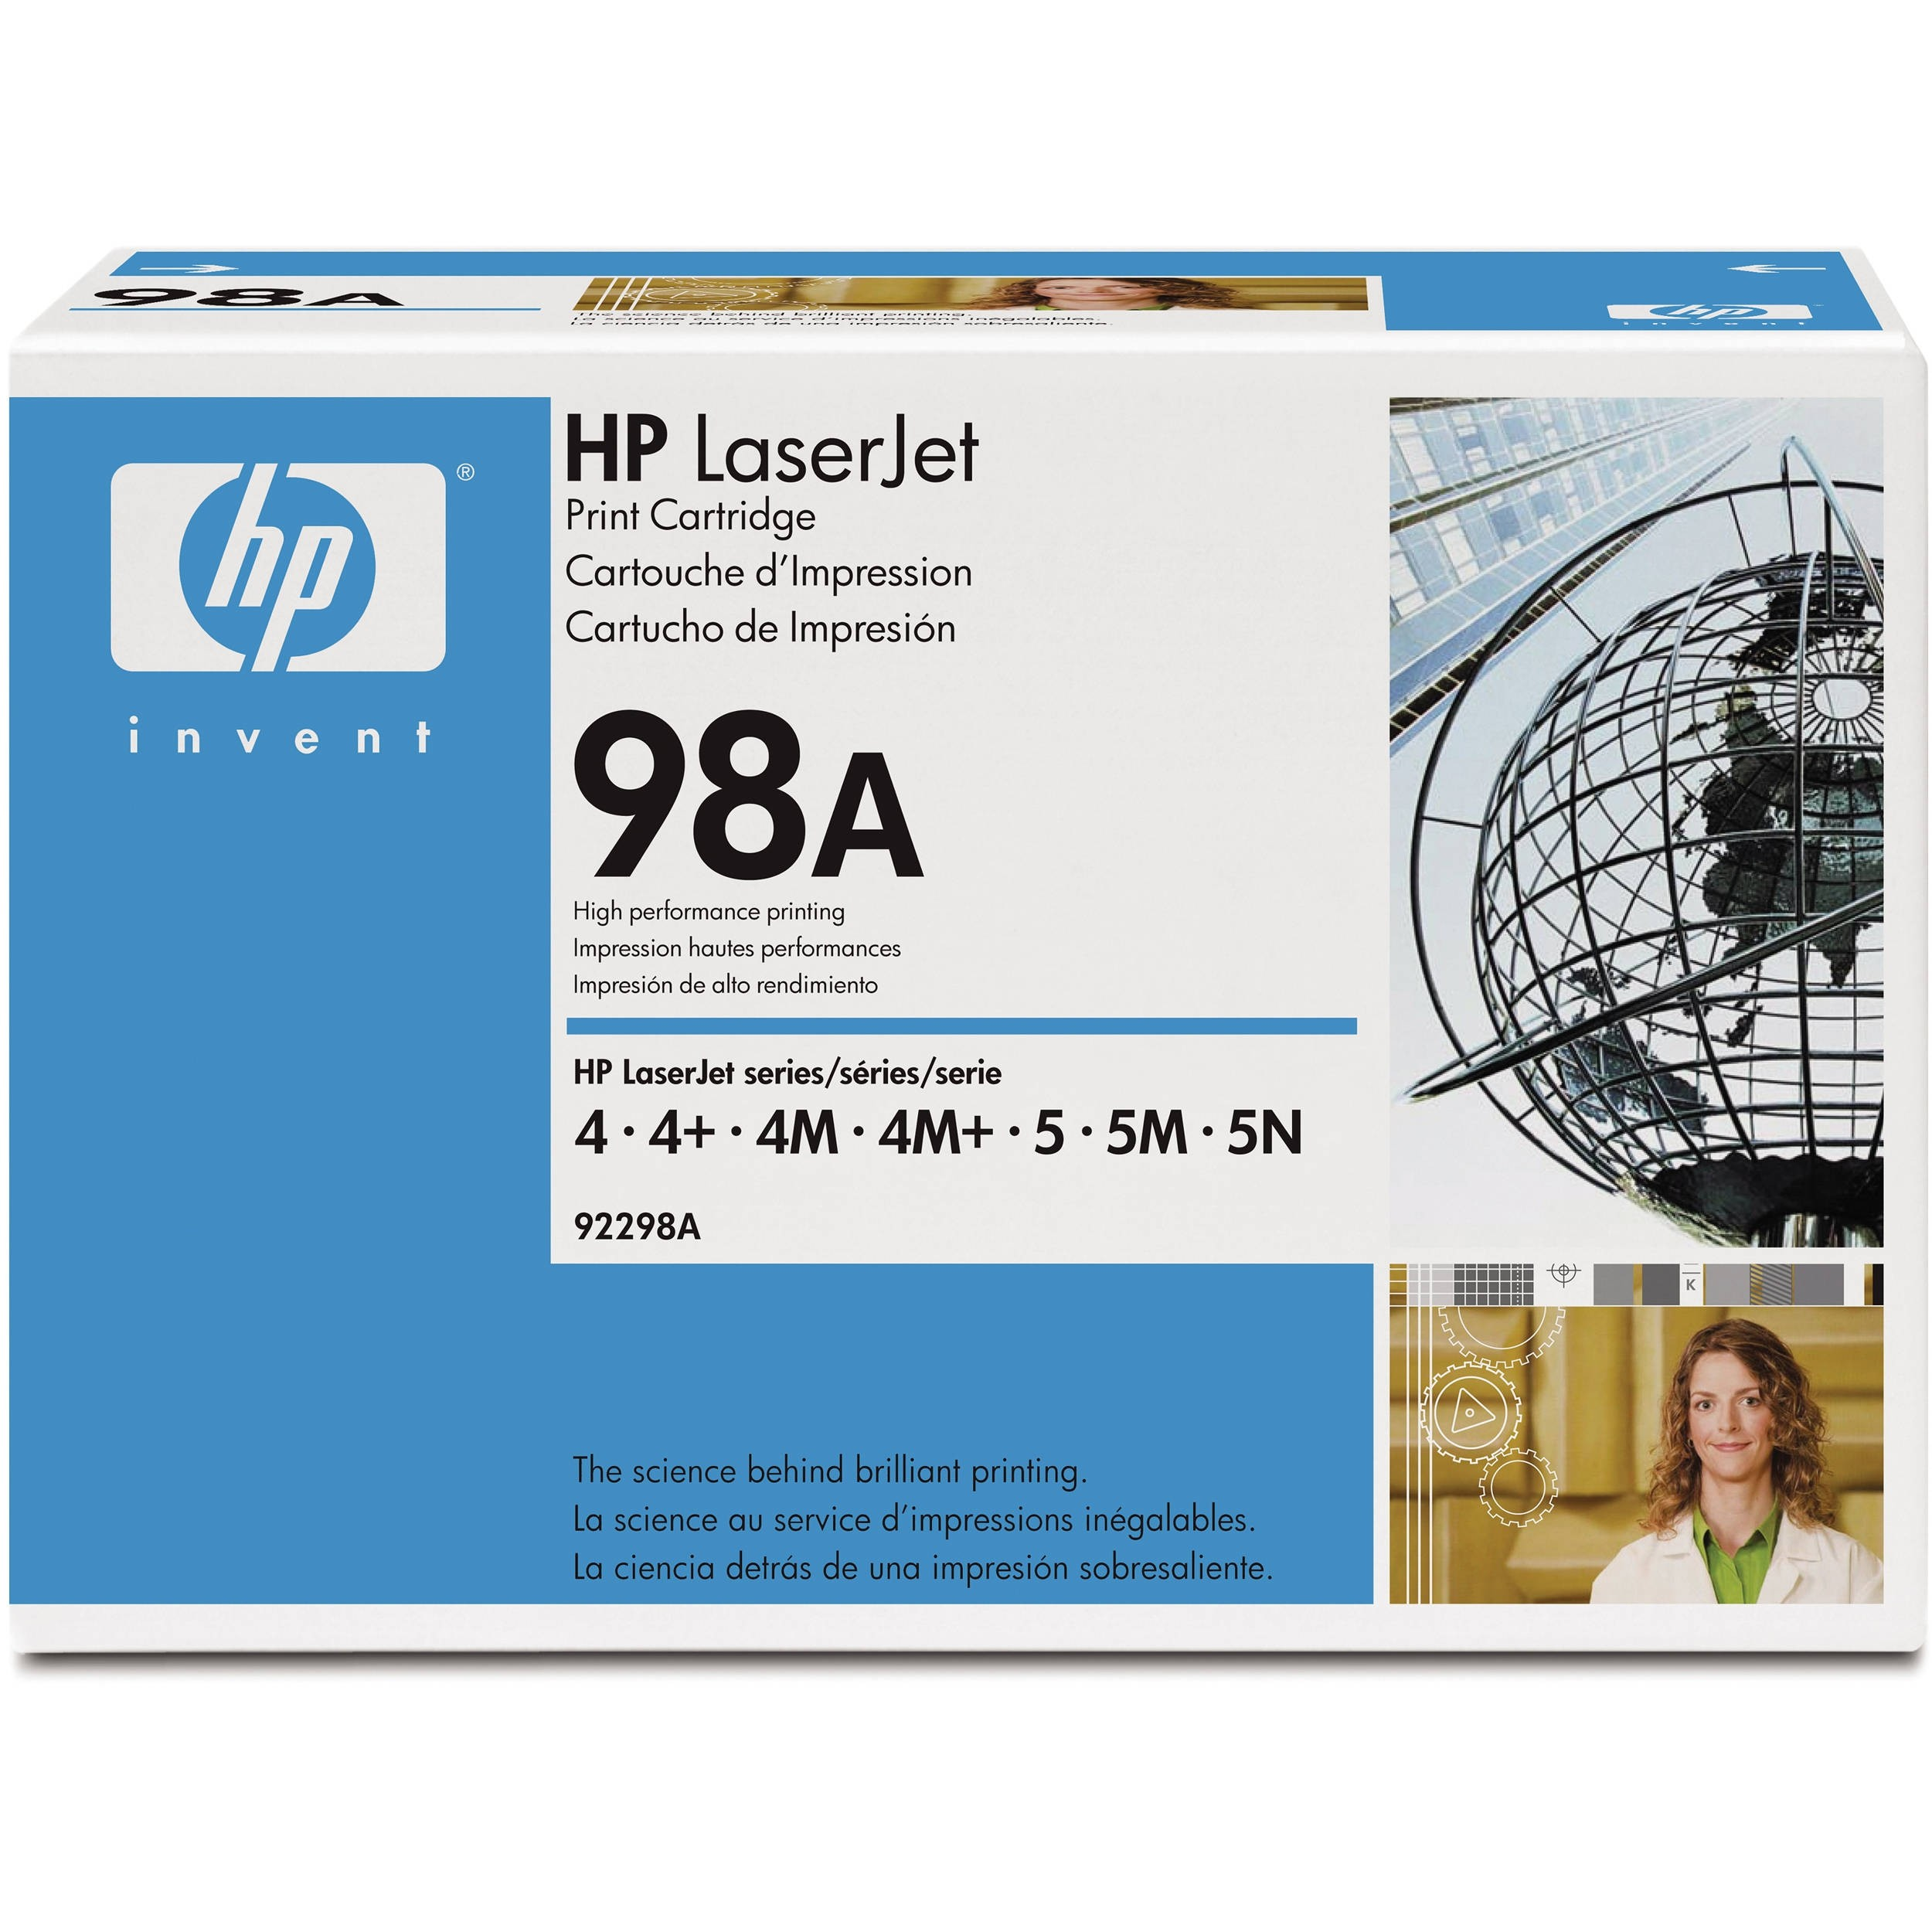 Genuine HP 98A Black Toner Cartridge (92298A)